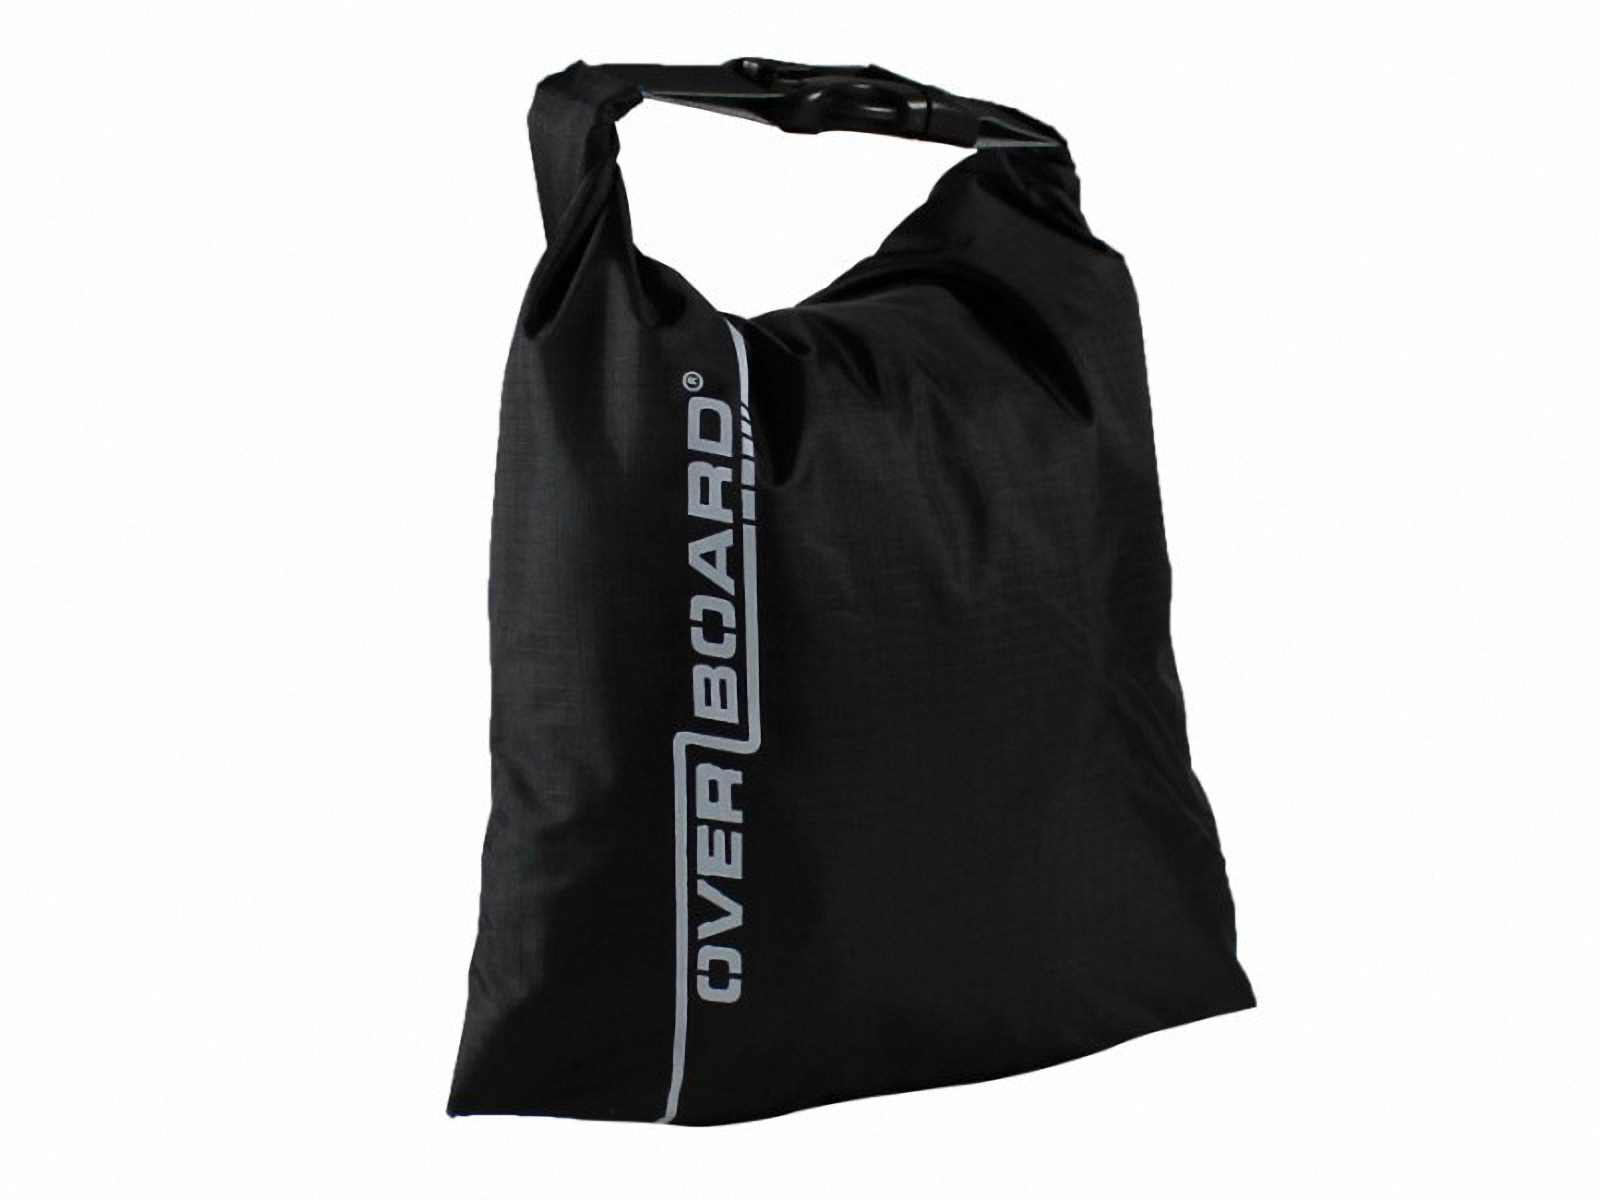 Водонепроницаемый гермомешок OverBoard OB1031BLK - Waterproof Dry Pouch - 1L (Black) Фото 1